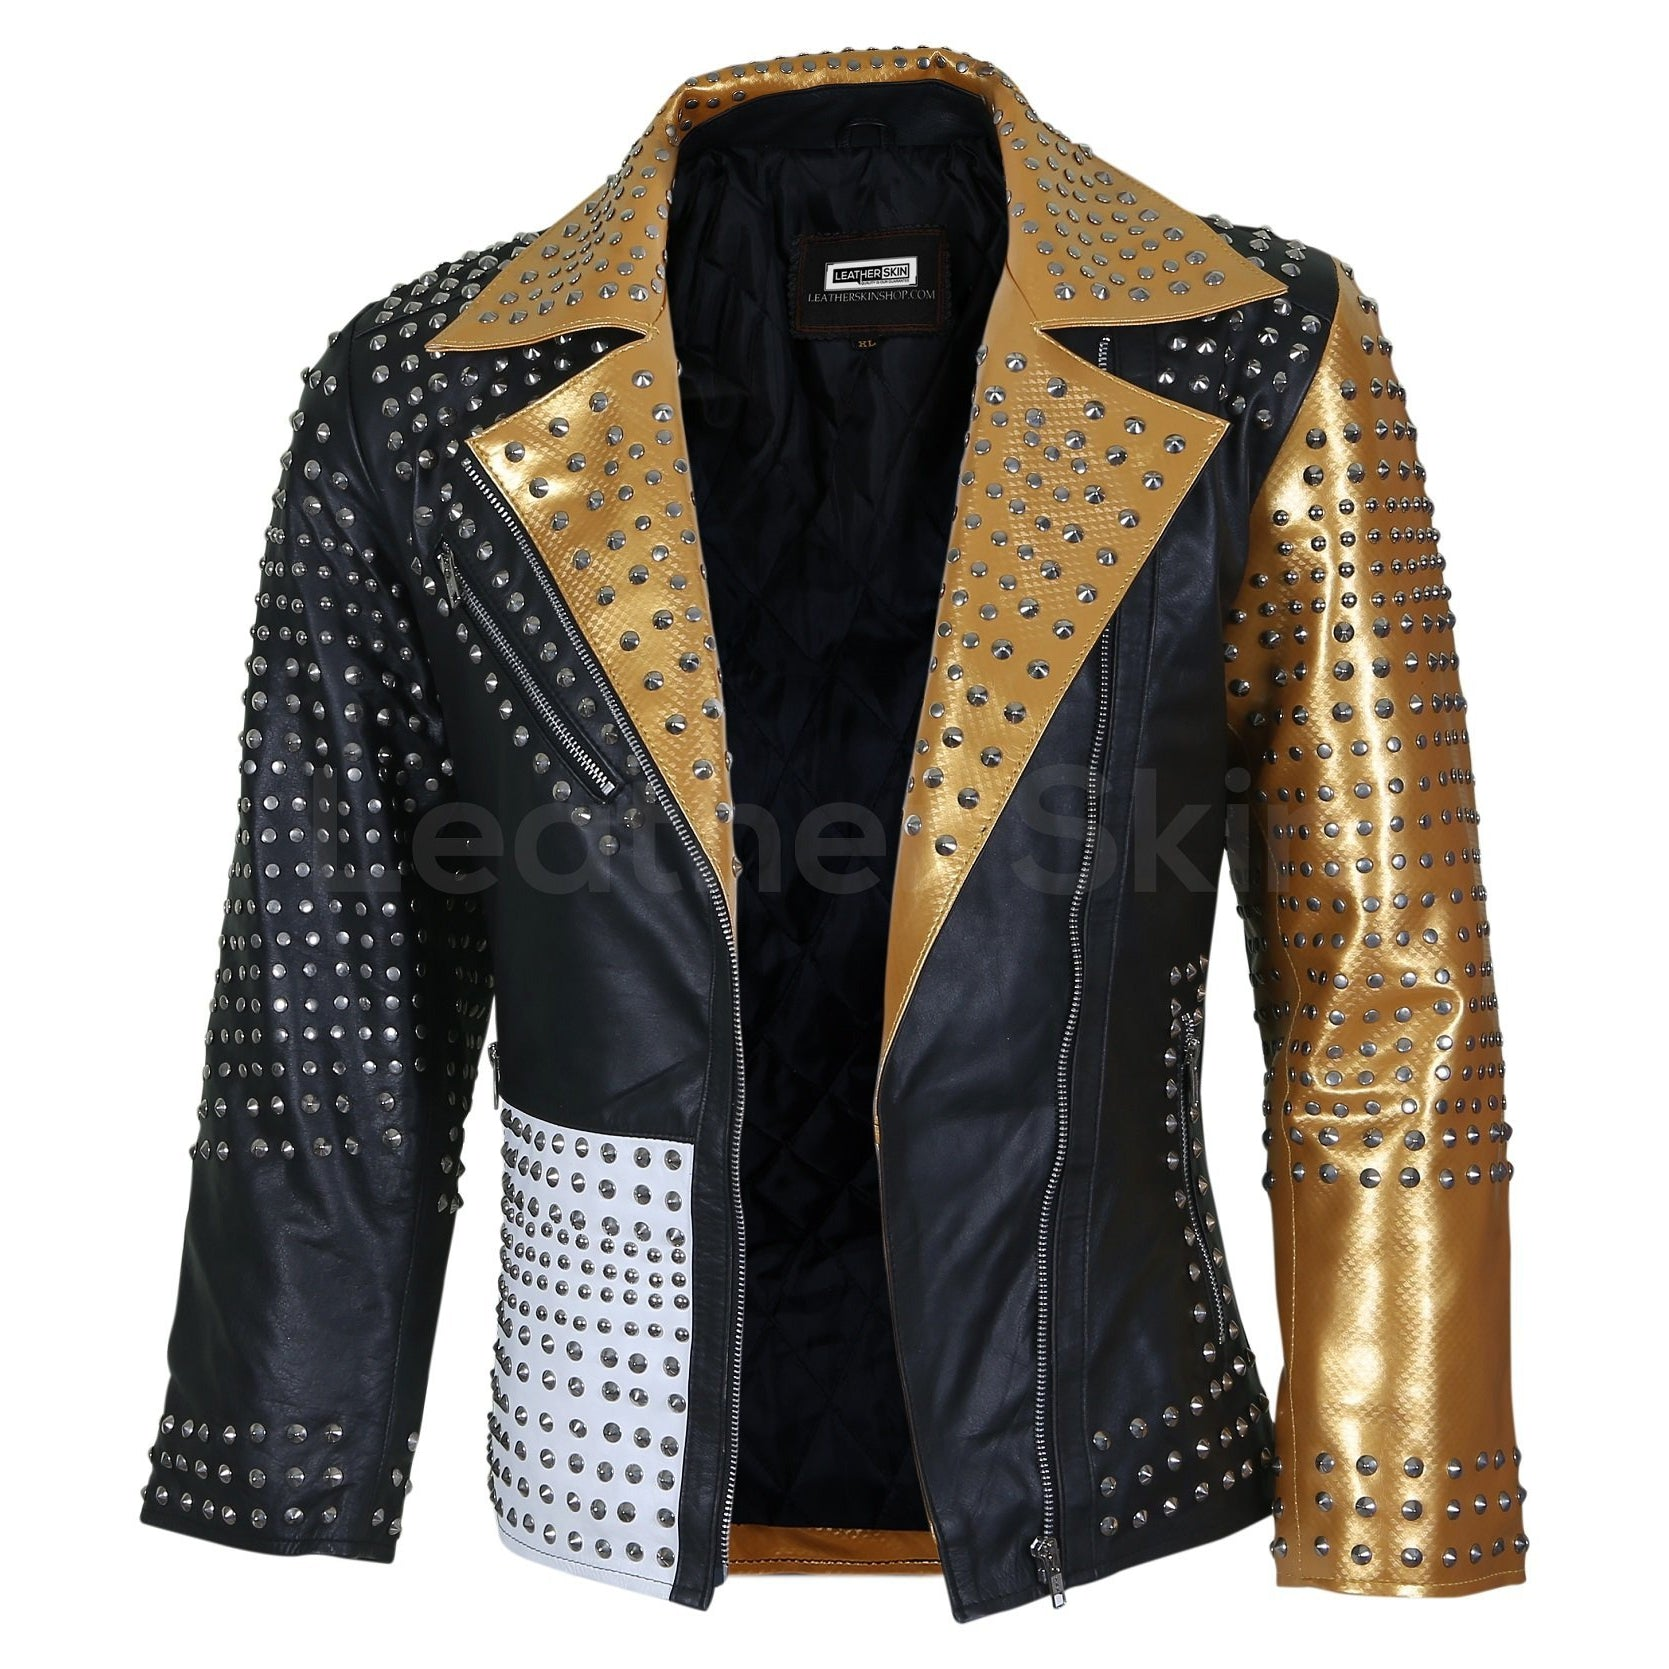 Women Black and Gold Leather Jacket with Cone Spikes